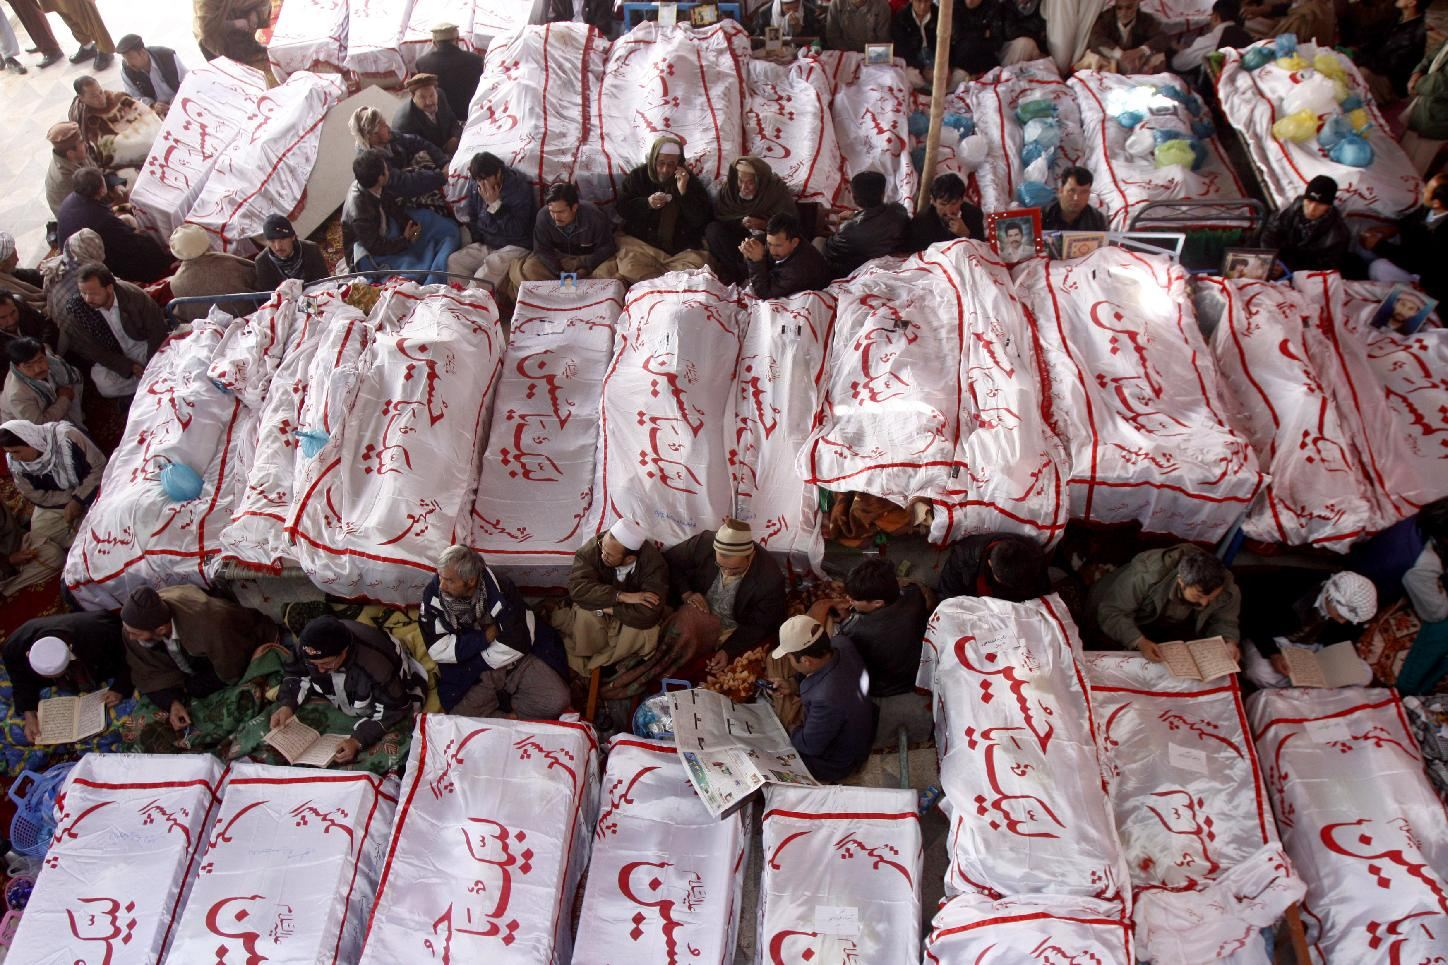 Associated Press/Arshad Butt - Pakistani Shiite Muslims sit in protest next to the dead bodies of their family members killed in Saturday's bombing